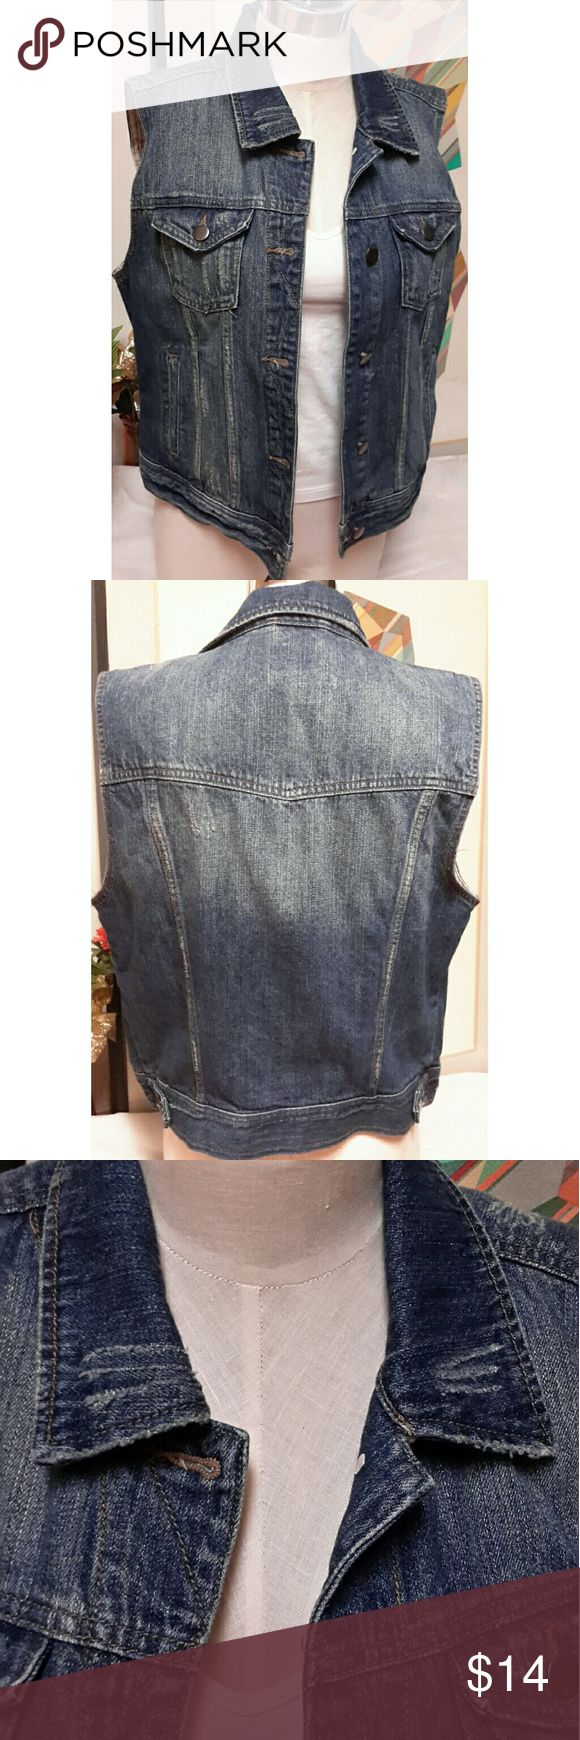 Forever 21 Premium Denim Distressed Jean Jacket Sleeveless denim jacket. Size Large. Has pockets on each side and inside. 22in length. 100% cotton. Questions are welcomed. Forever 21 Jackets & Coats Jean Jackets